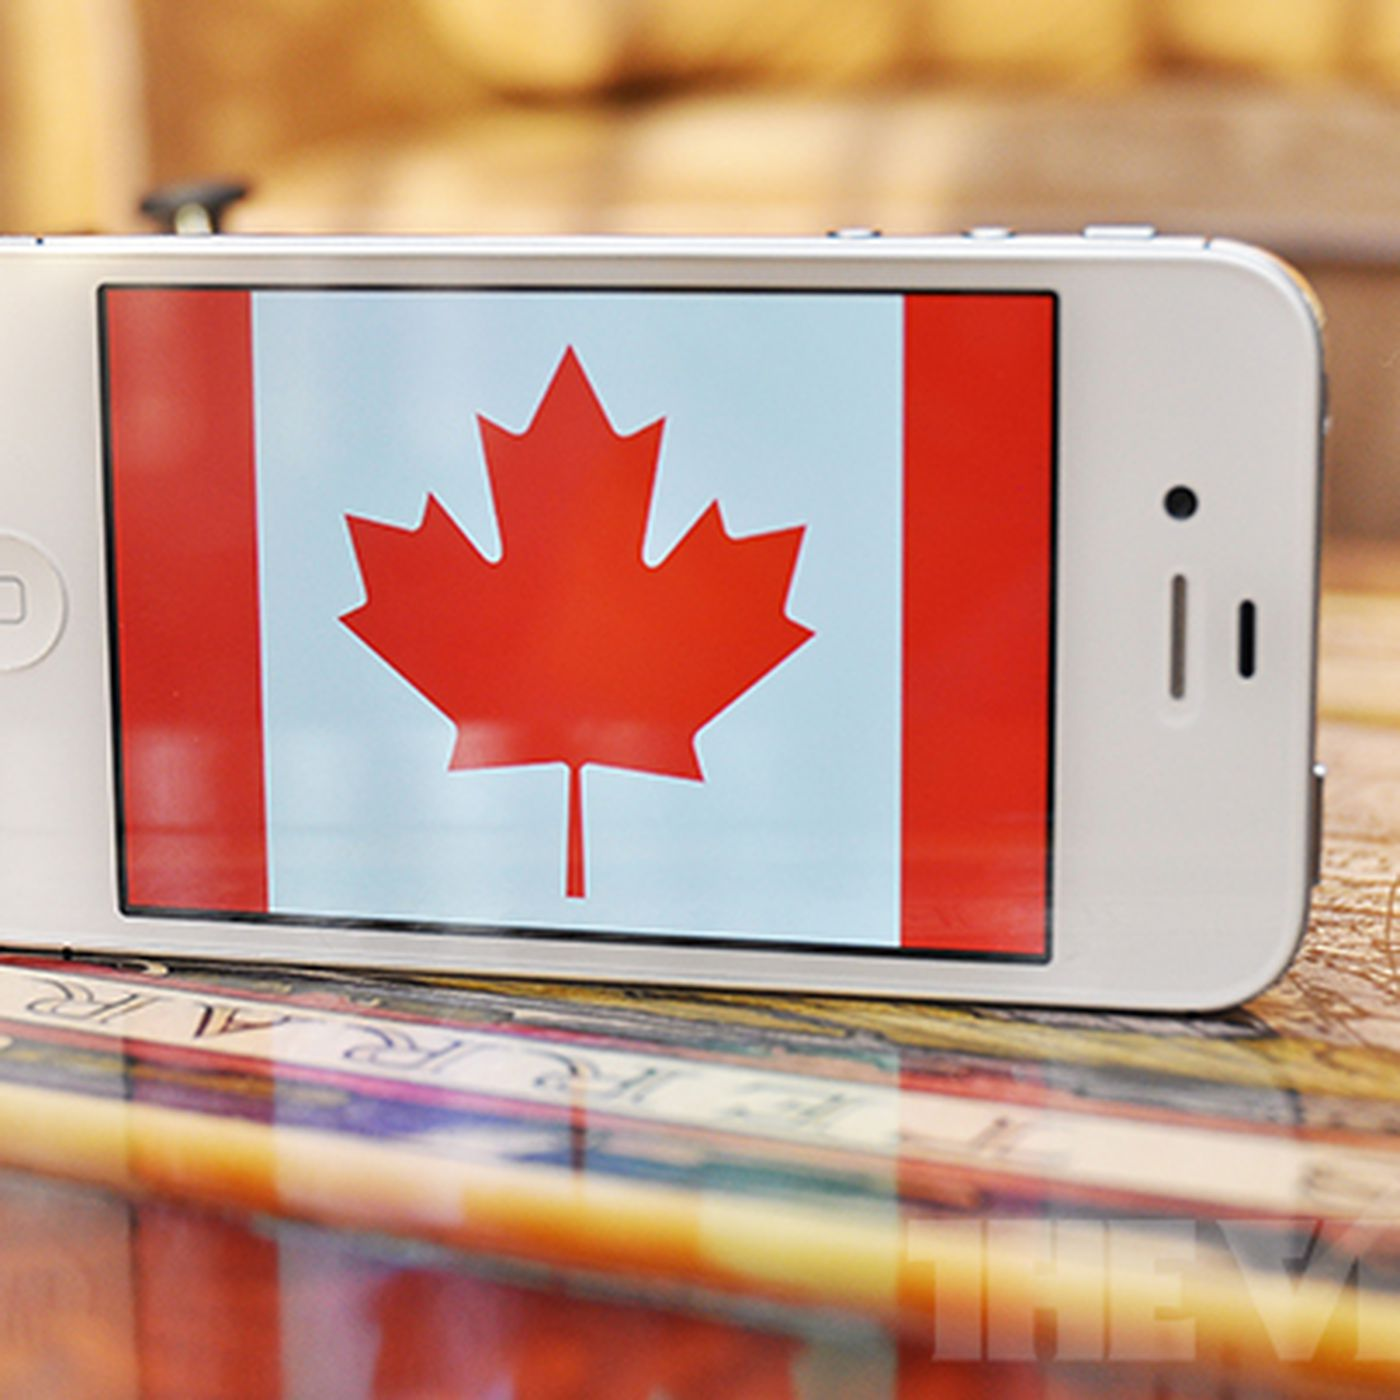 All cellphones sold in Canada must be unlocked starting in